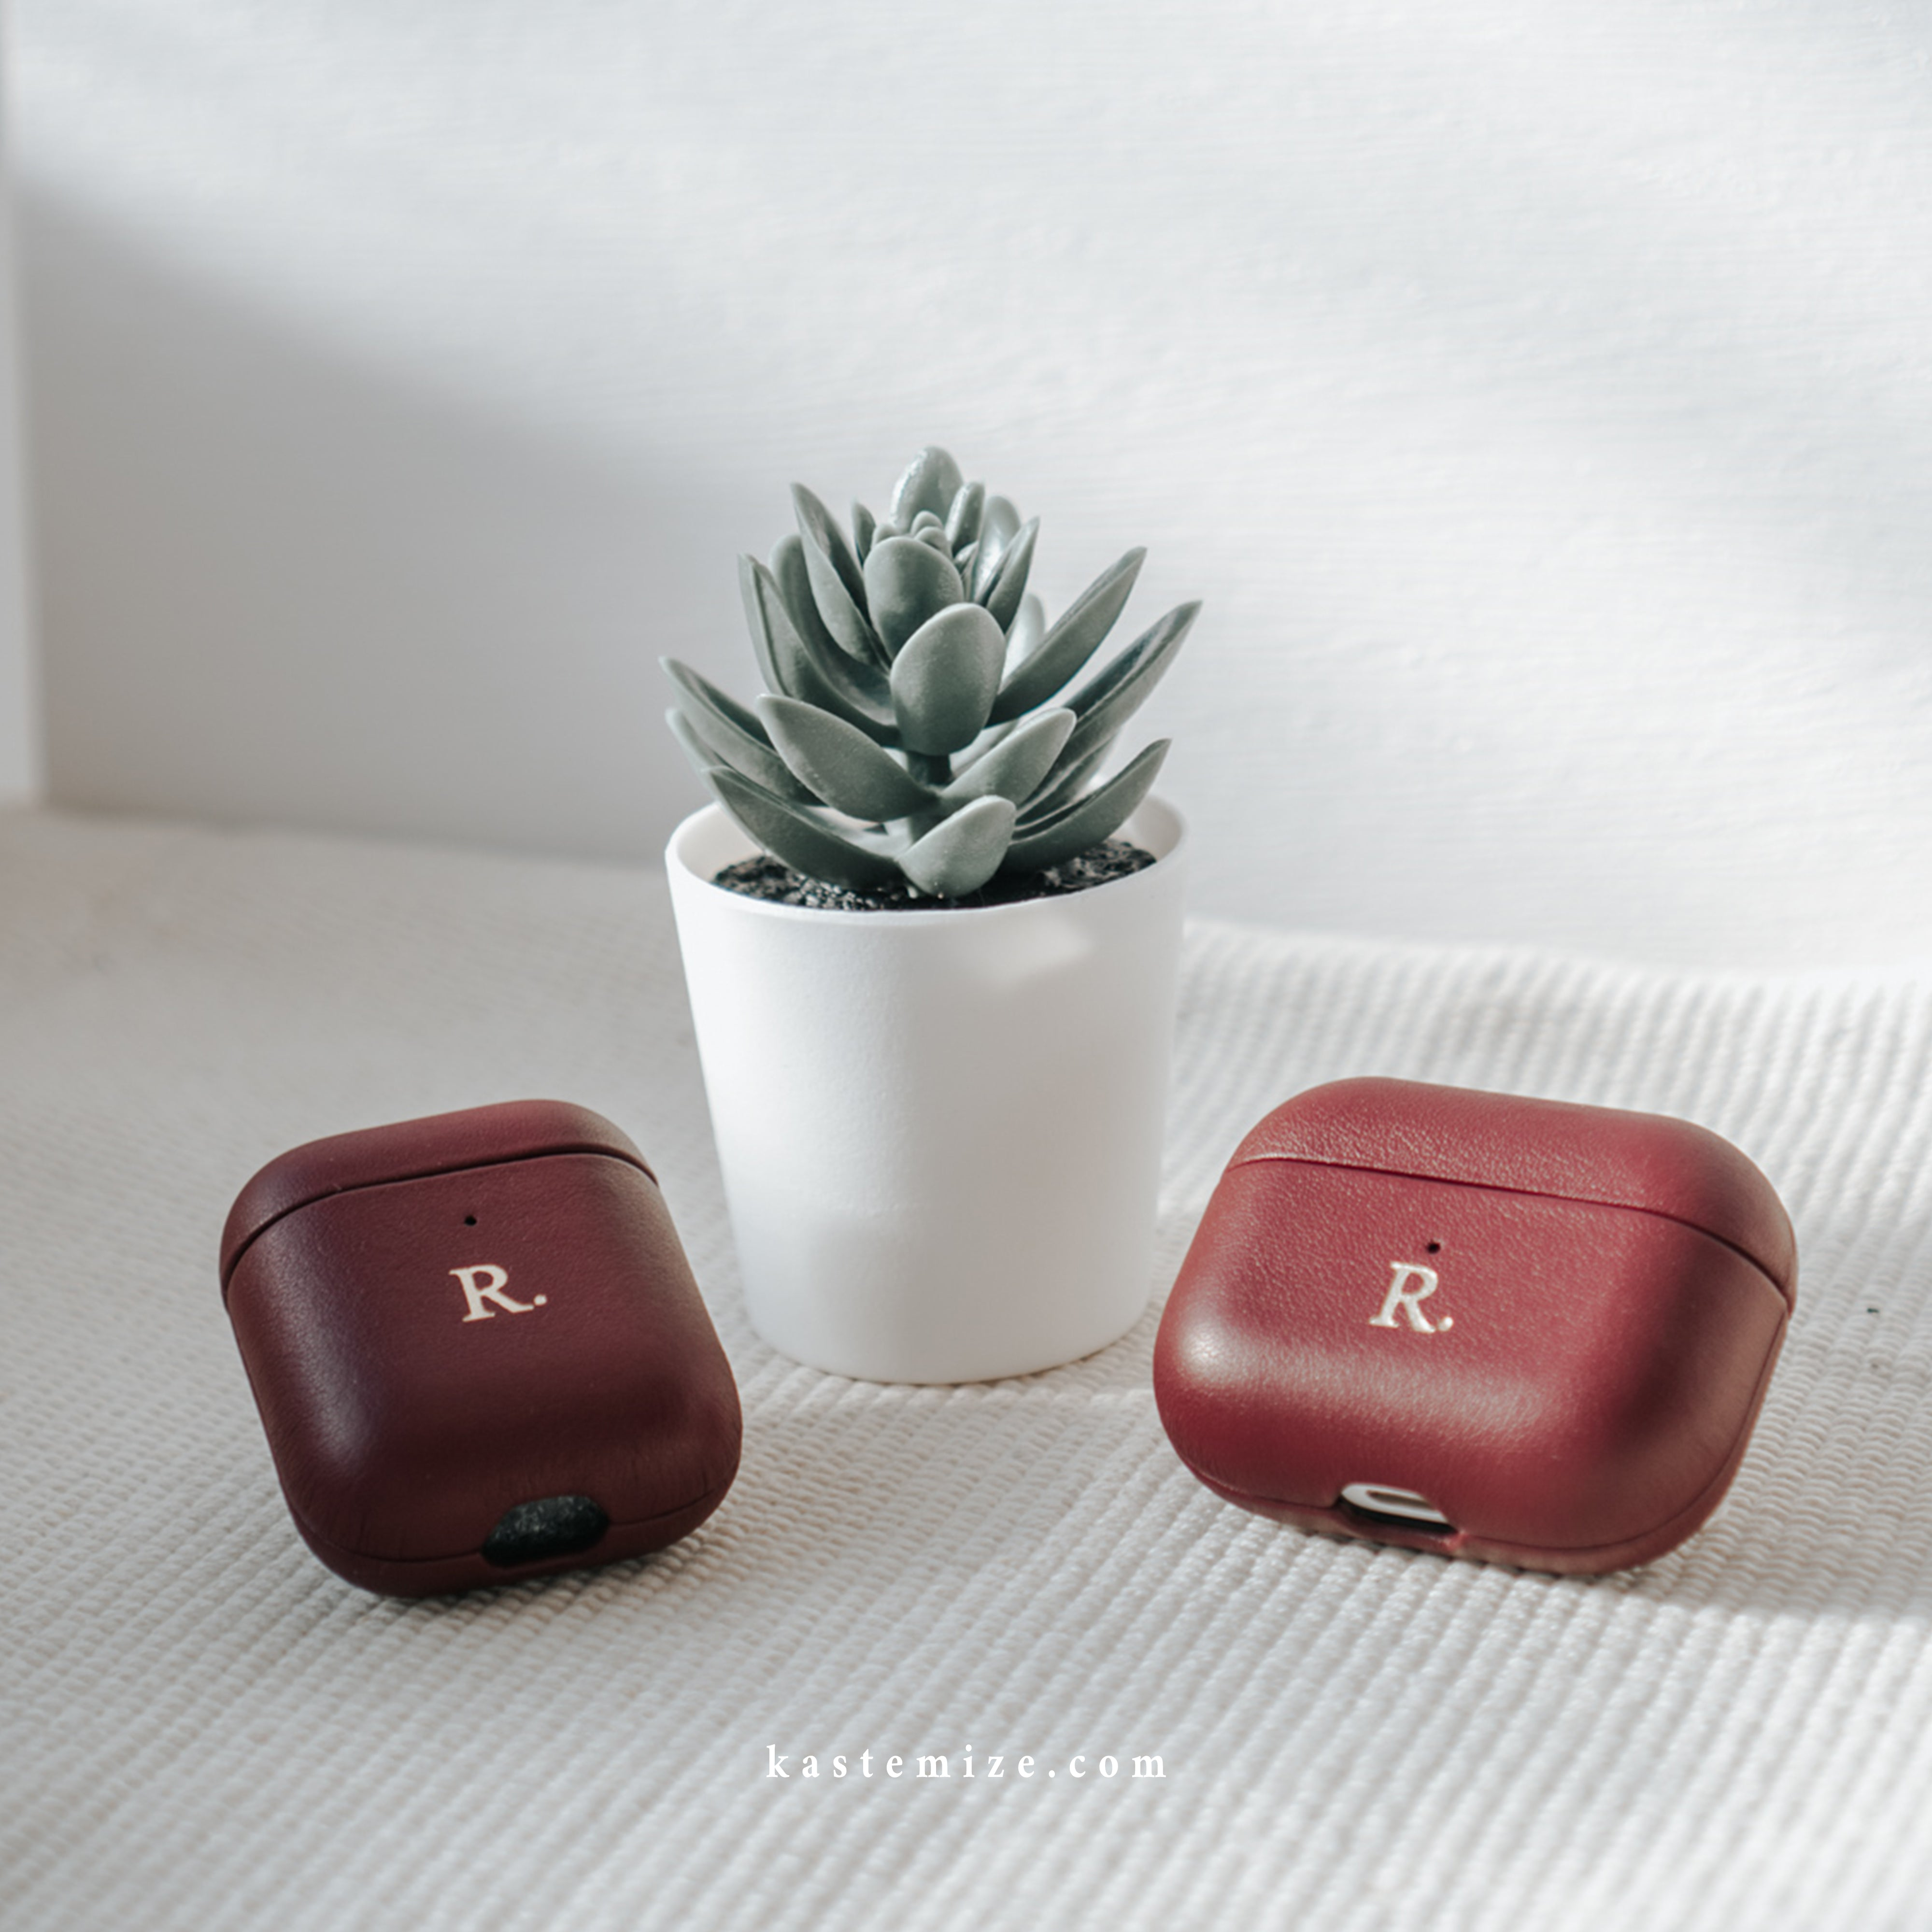 Personalised Burgundy Airpods Pro Case in Singapore with name engraving and customisation